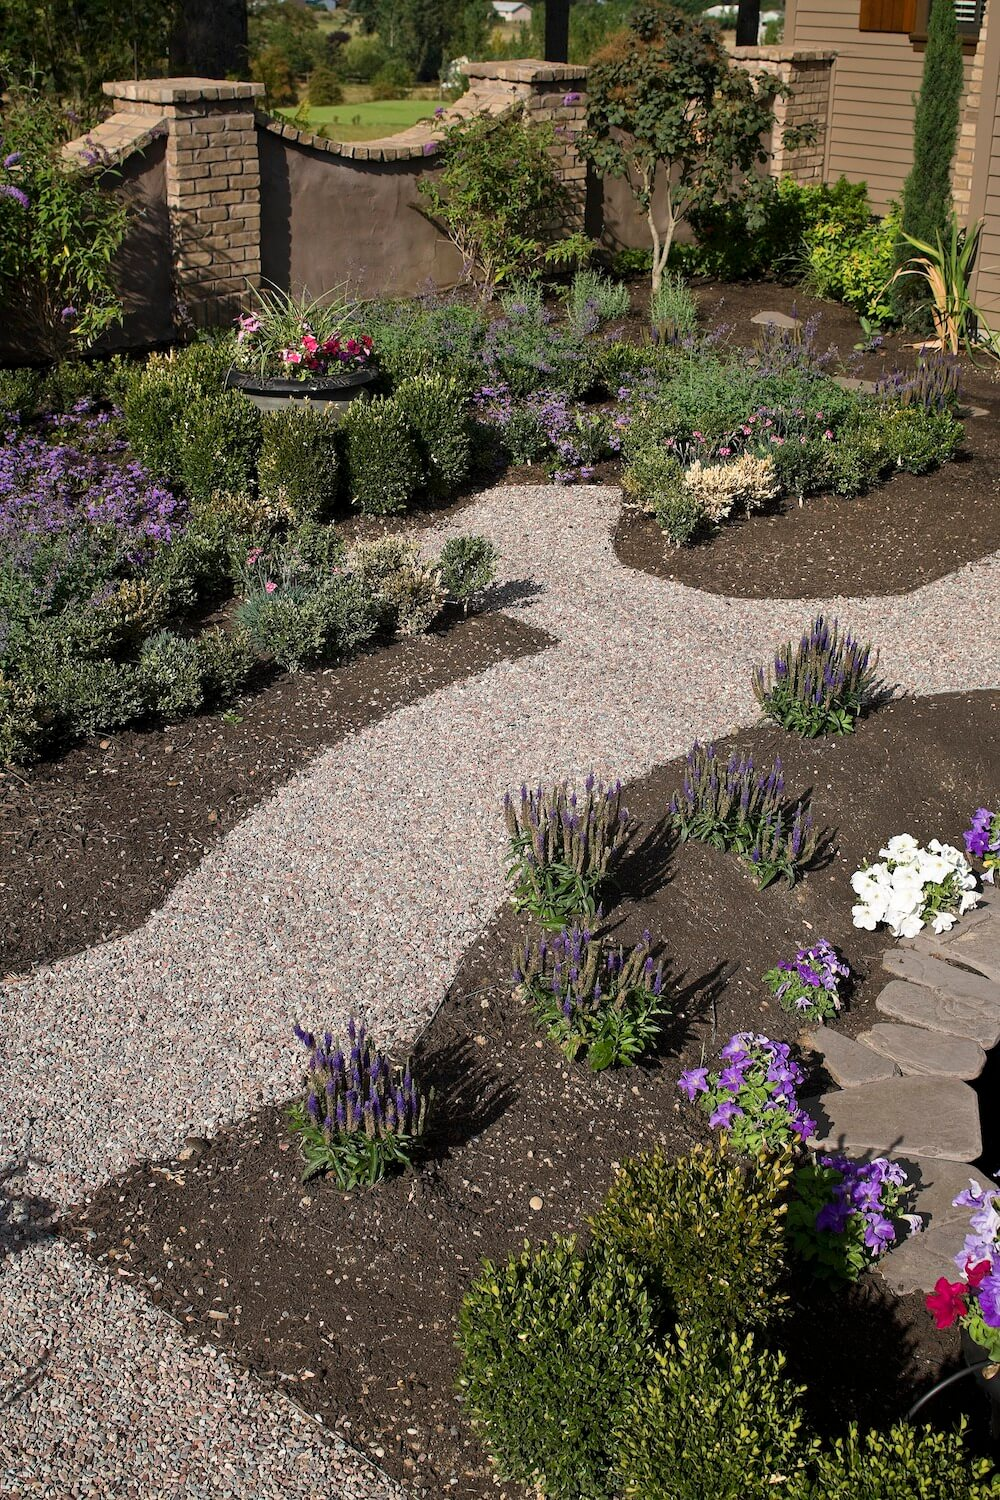 Crushed Stone Uses & Sizes - 2018 Crushed Stone Prices Crushed Rock Costs & Advantages